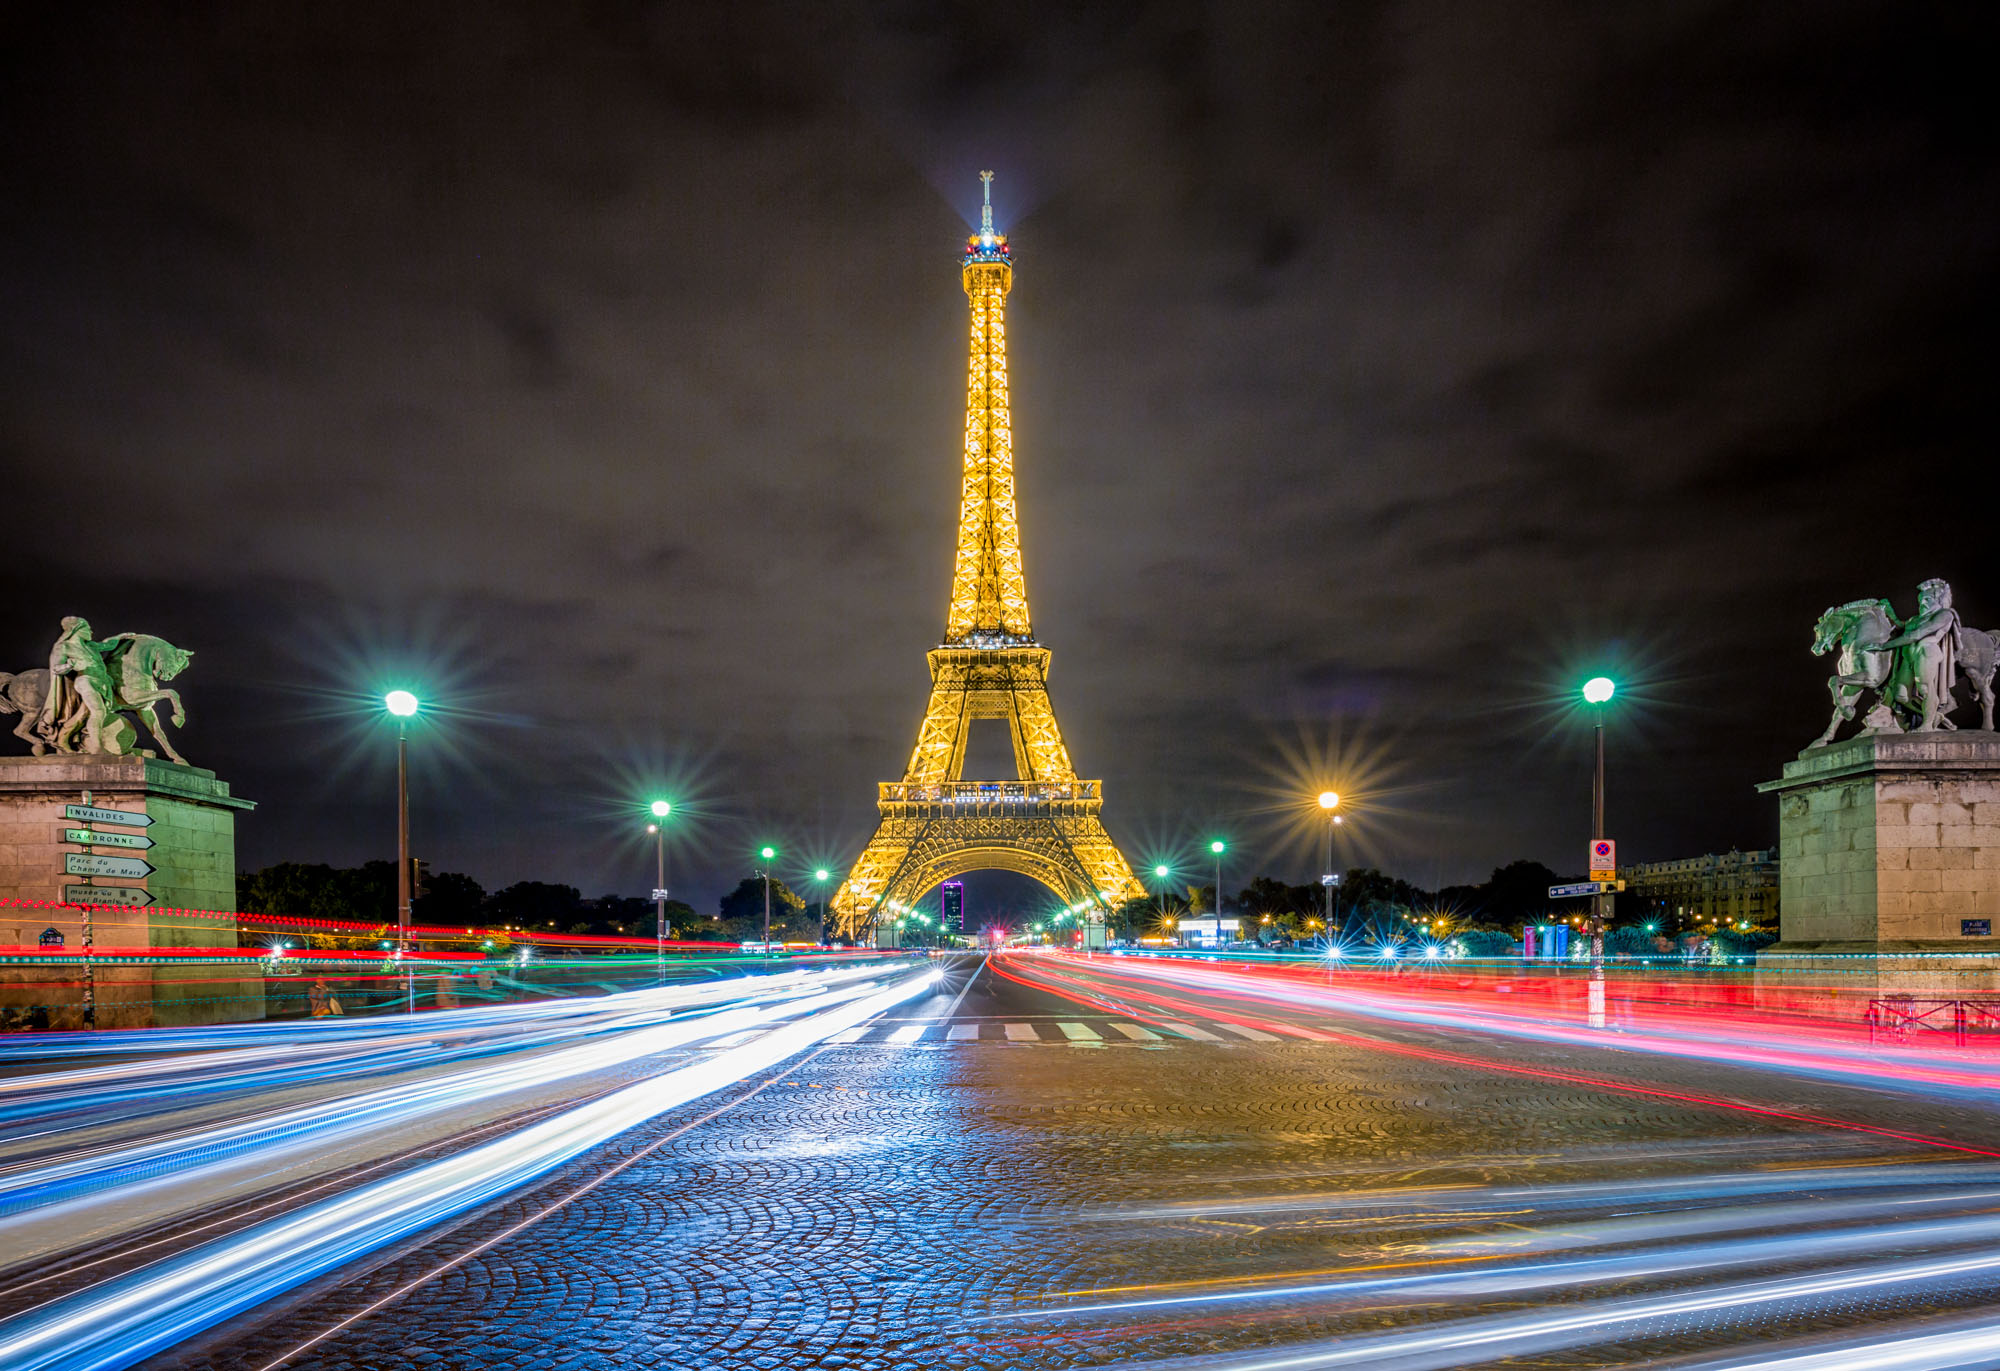 long exposure night photography of the Eiffel Tower in Paris France viewed from the roadside capturing traffic as light trails